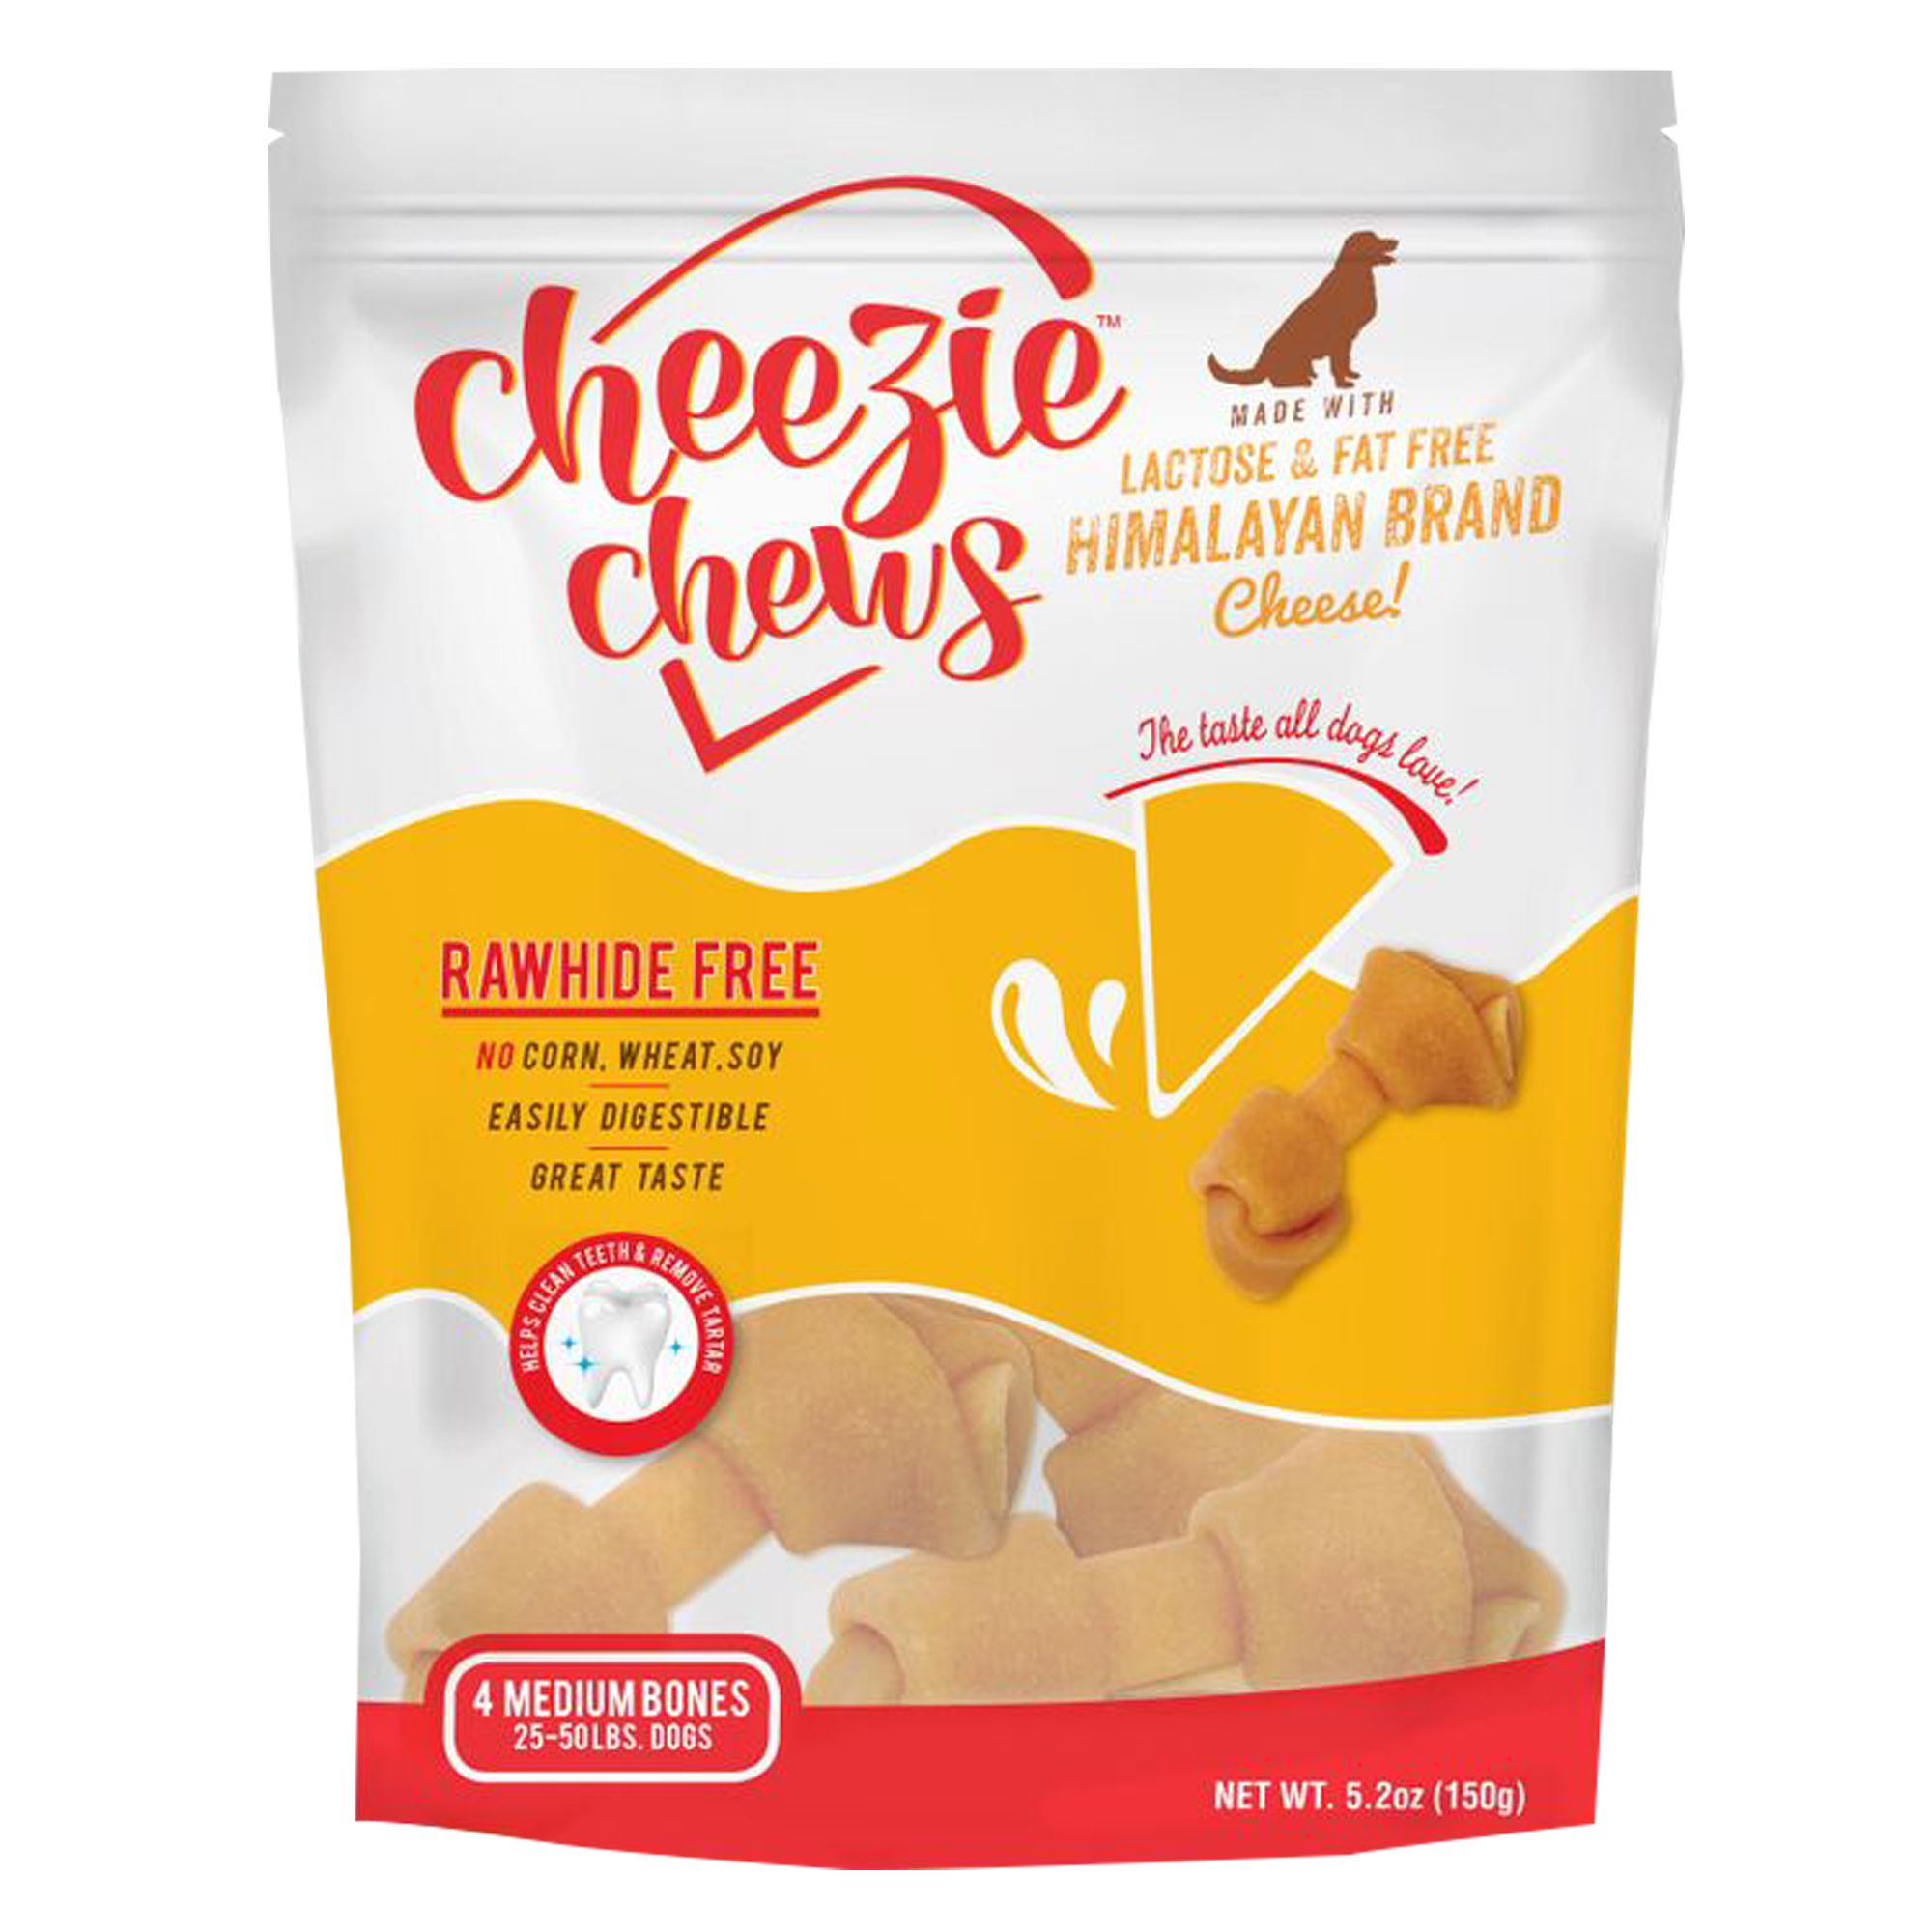 Cheezie Chews Rawhide Free Medium Dog Treat - Cheese size: 4 Count, Natural Cheese, Rawhide Free Knotted Chew, Adult and Senior, Himalayan Brand Cheese (Skim Milk, Lime, Enzymes) 5265975